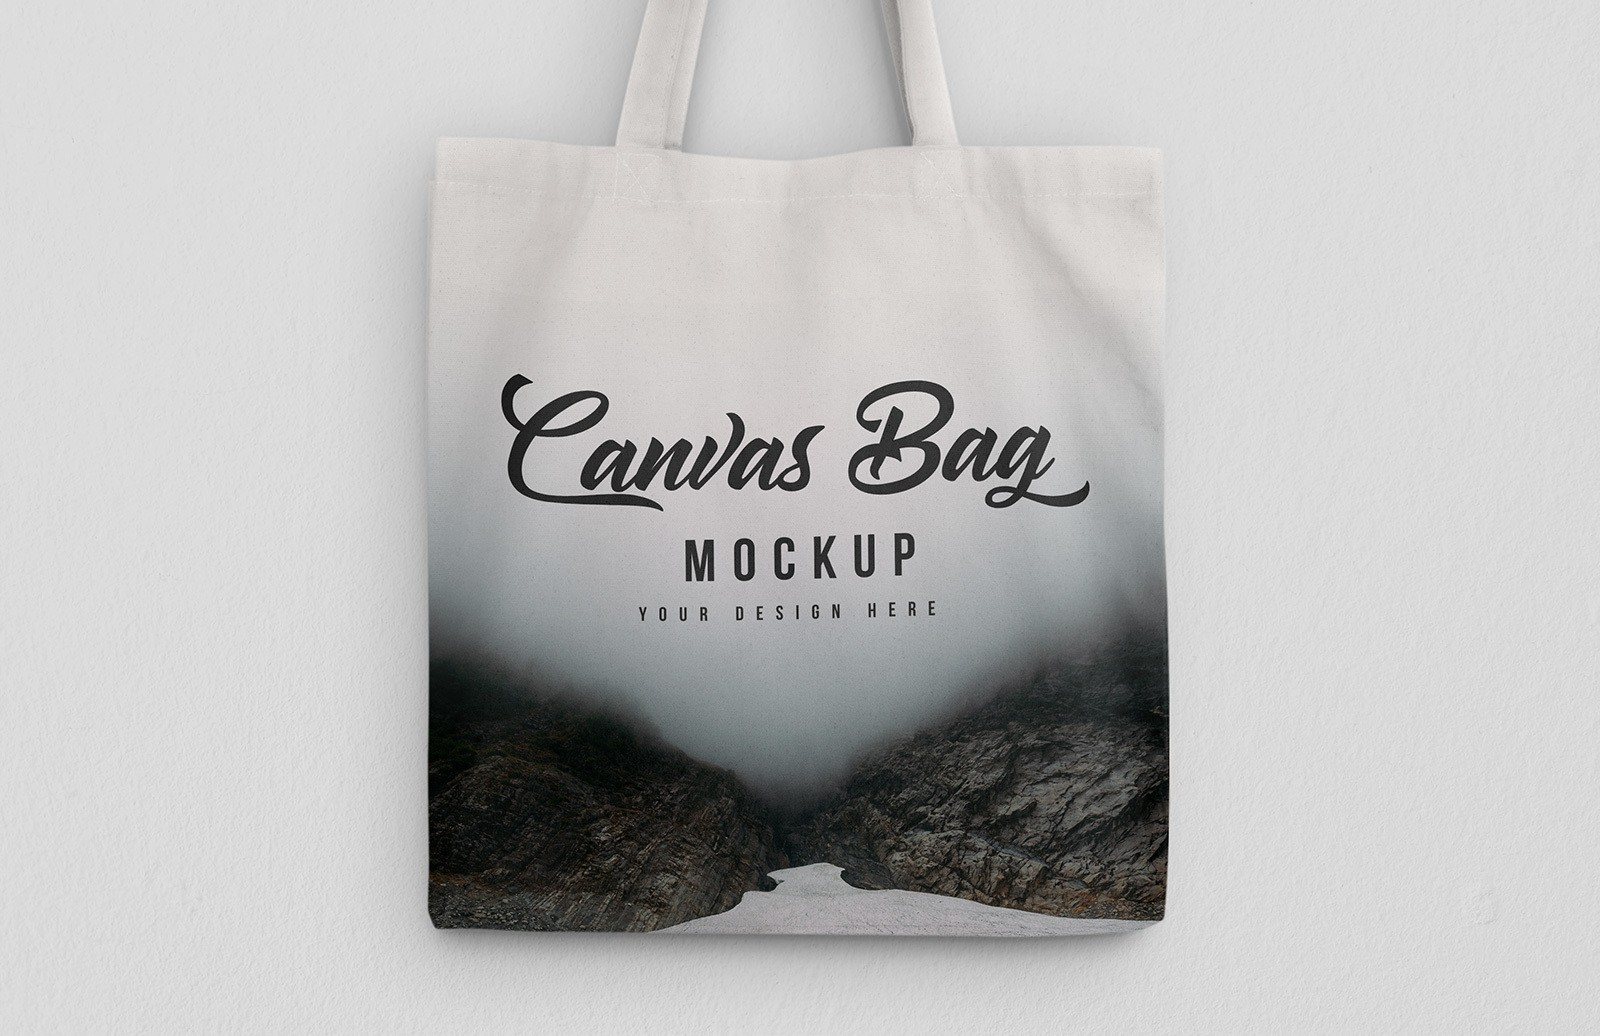 Hanging Canvas Bag Mockup Preview 1